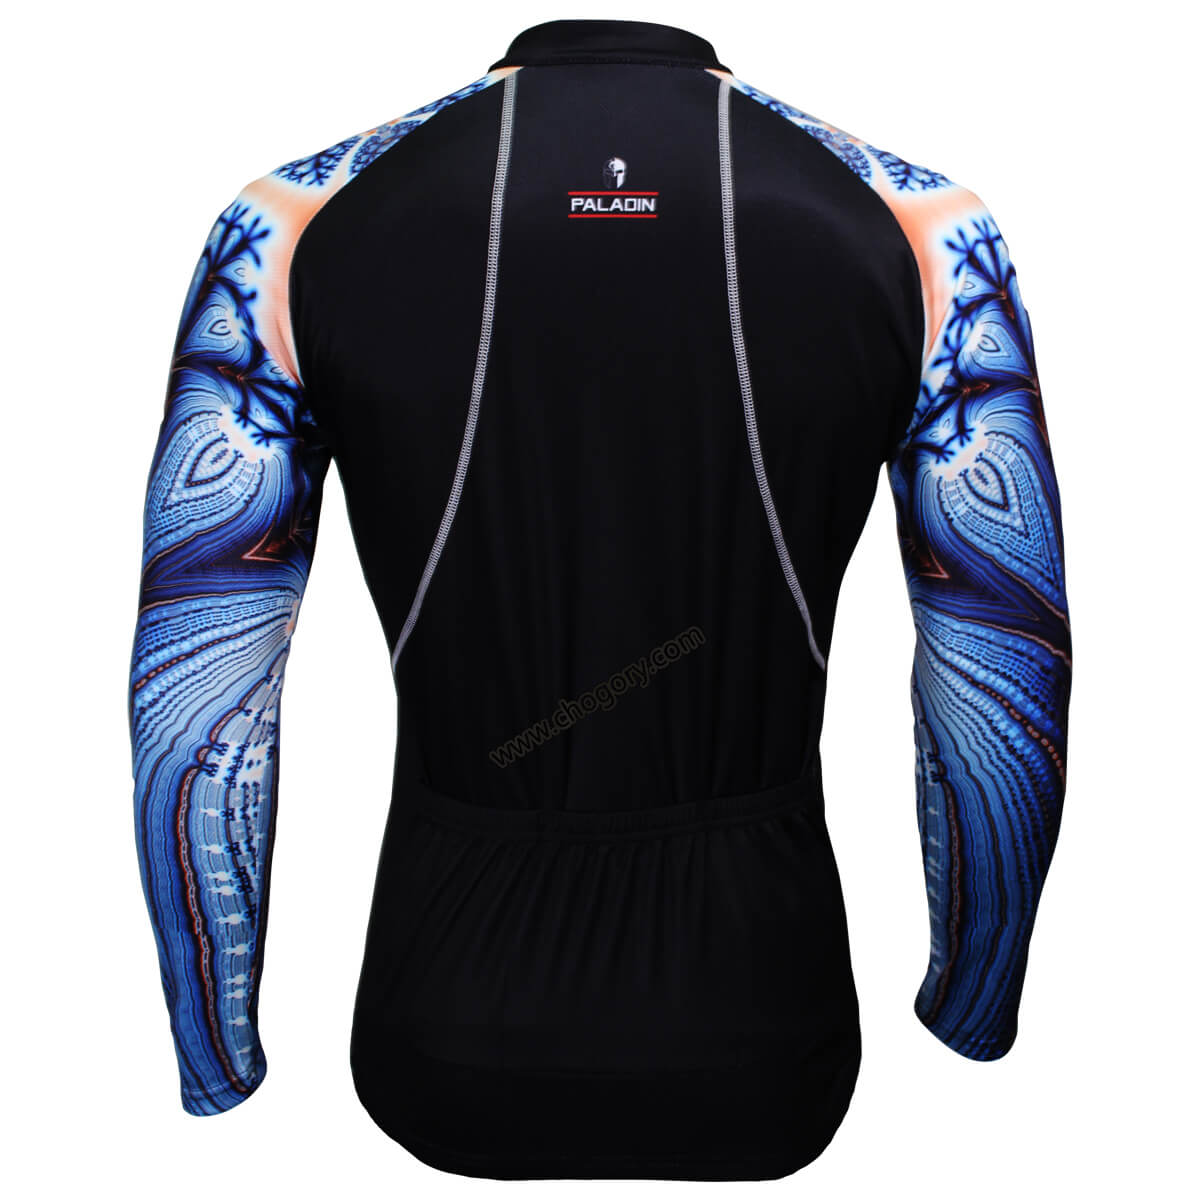 Cool Blue Parrot Sleeves Long Sleeve Cycling Jerseys For